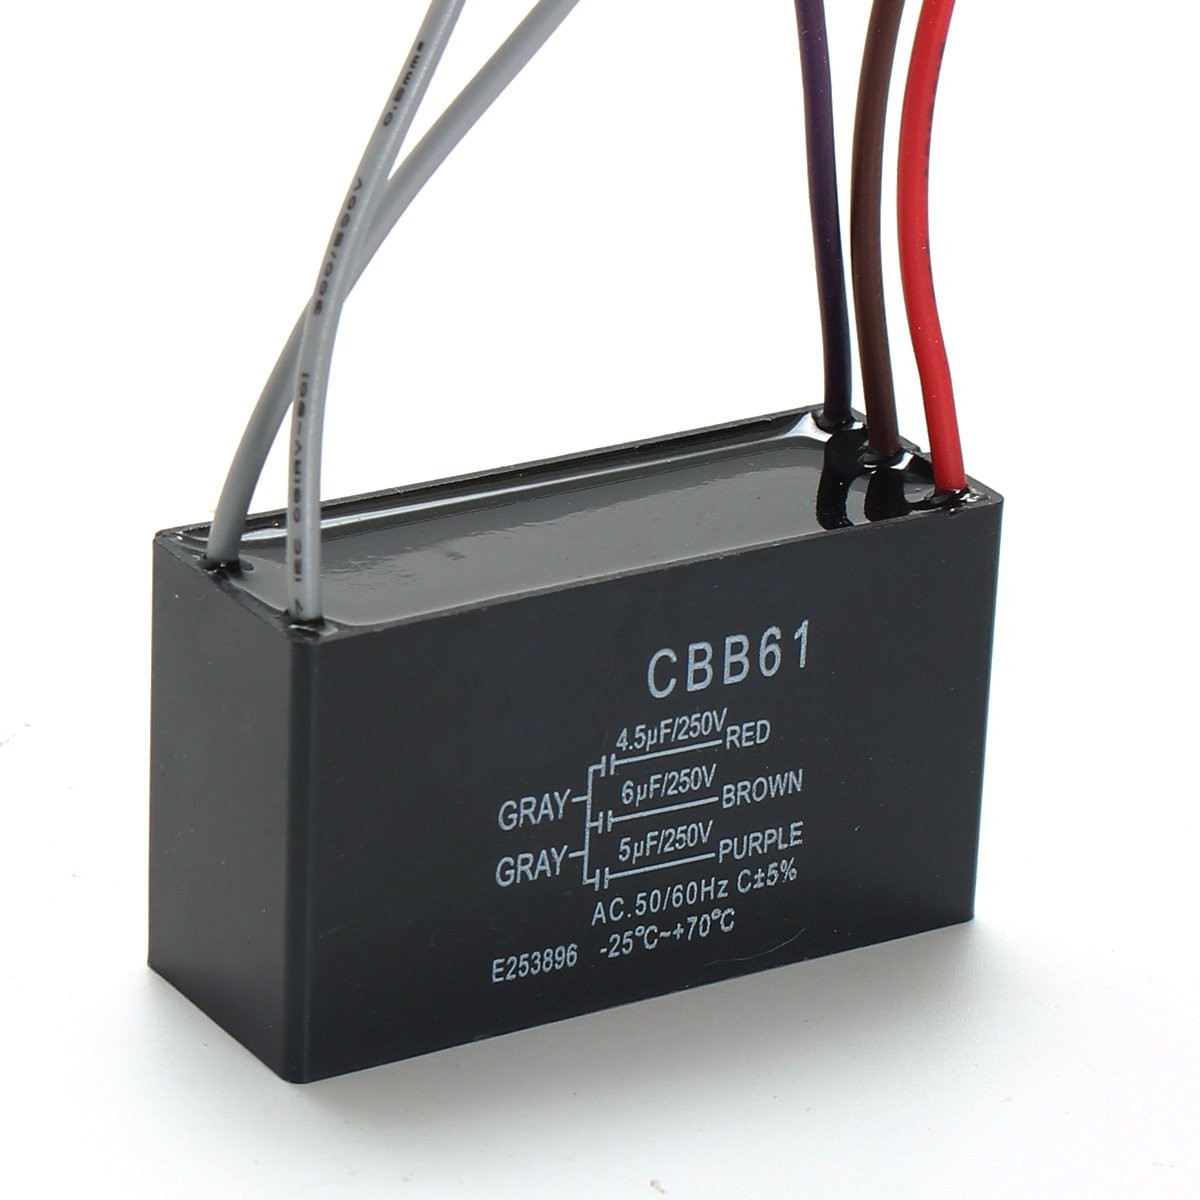 Black cbb61 45uf6uf5uf 5 wires ac 250v 5060hz for ceiling fan black cbb61 45uf6uf5uf 5 wires ac 250v 5060hz for ceiling fan capacitor in capacitors from electronic components supplies on aliexpress alibaba mozeypictures Image collections